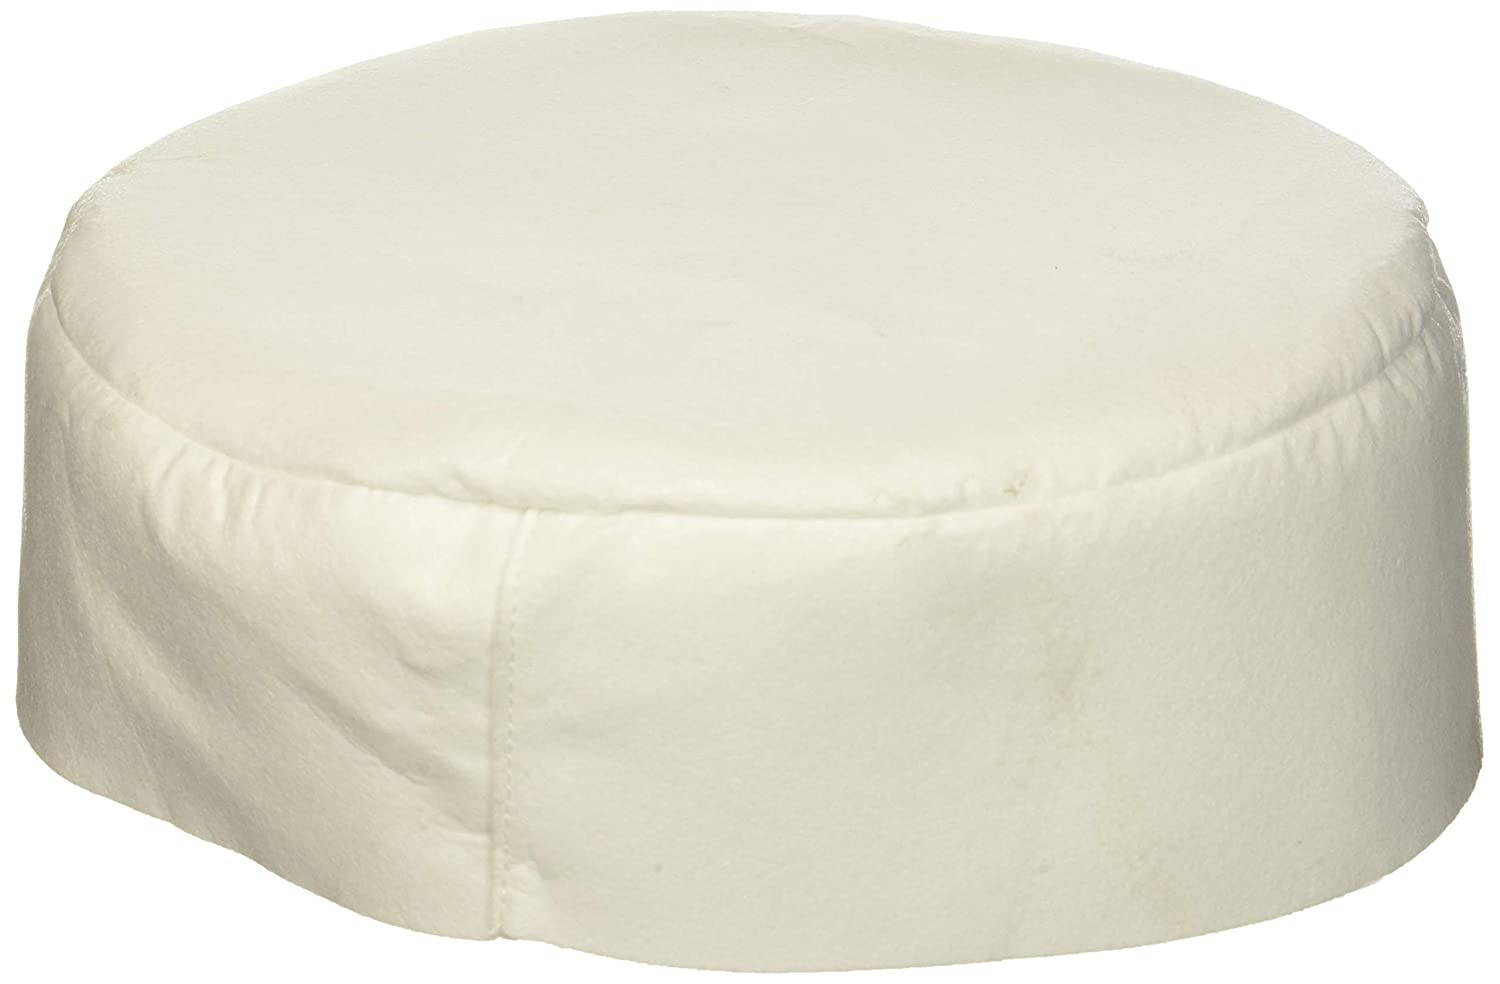 Dustless Technologies 13301 Hepa Filter Cover for Dustless Hepa Wet Dry Vacuums, White